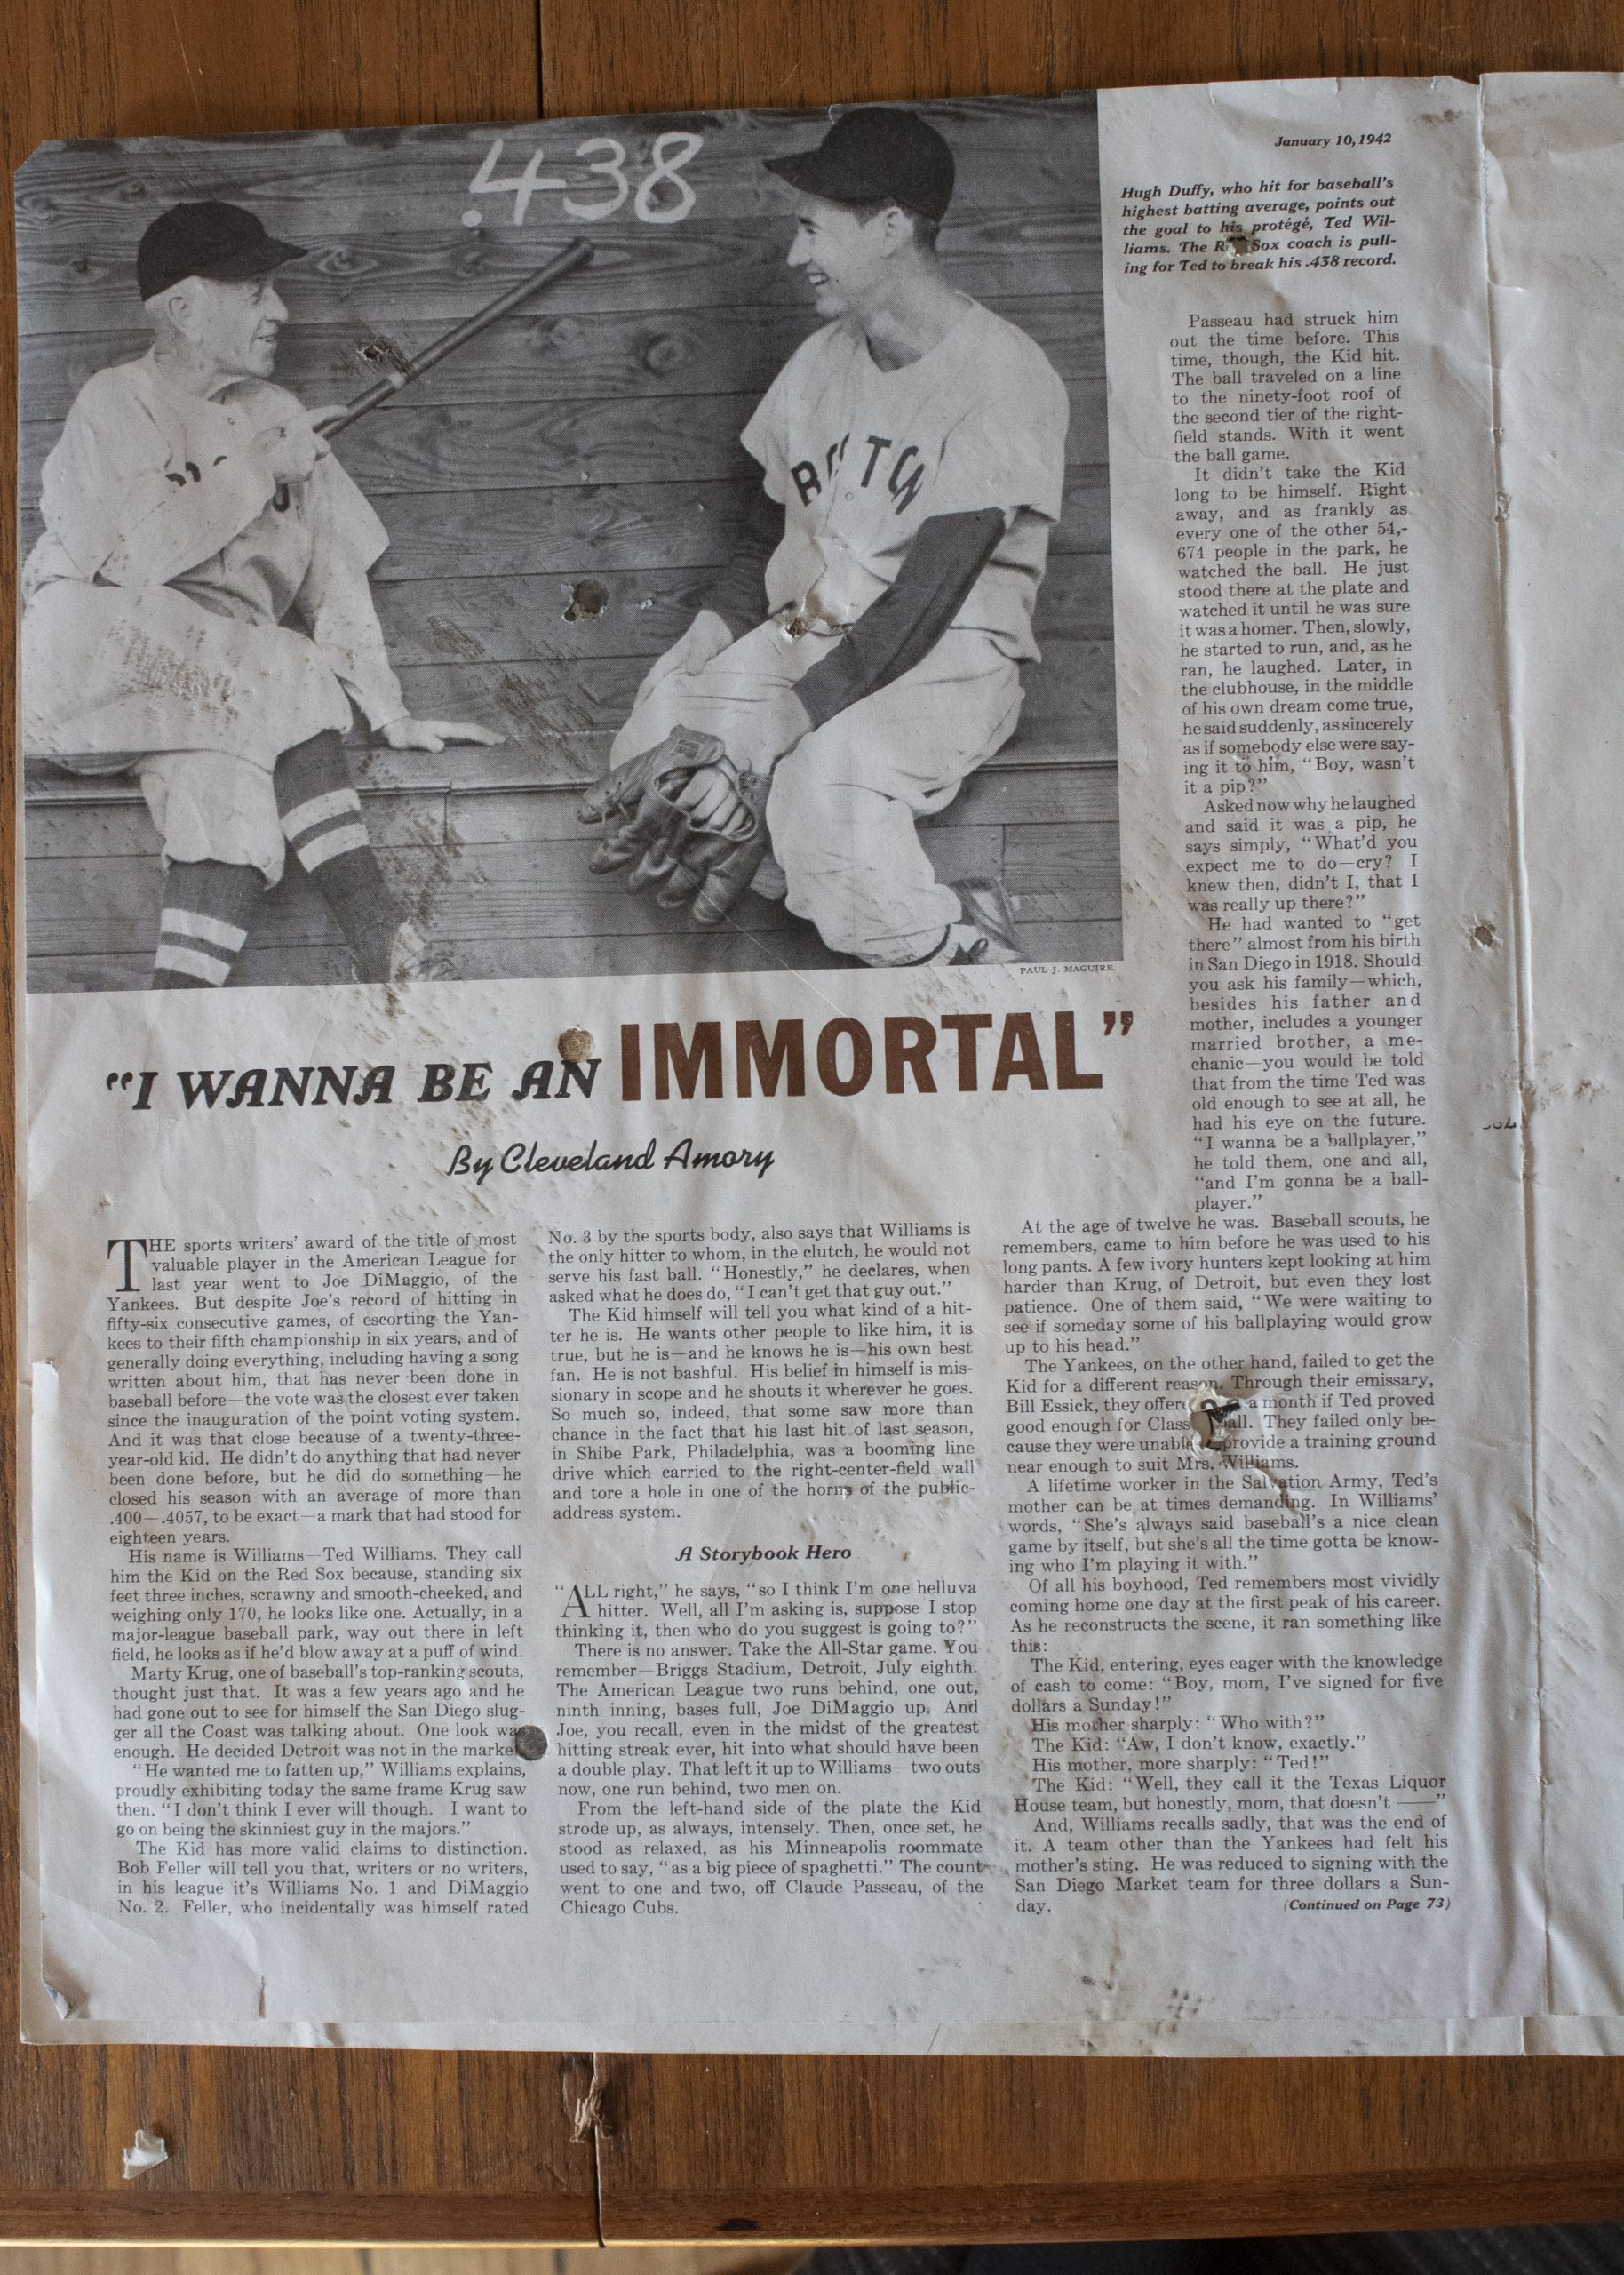 An article about Joe DiMaggio published in the Saturday Evening Post.